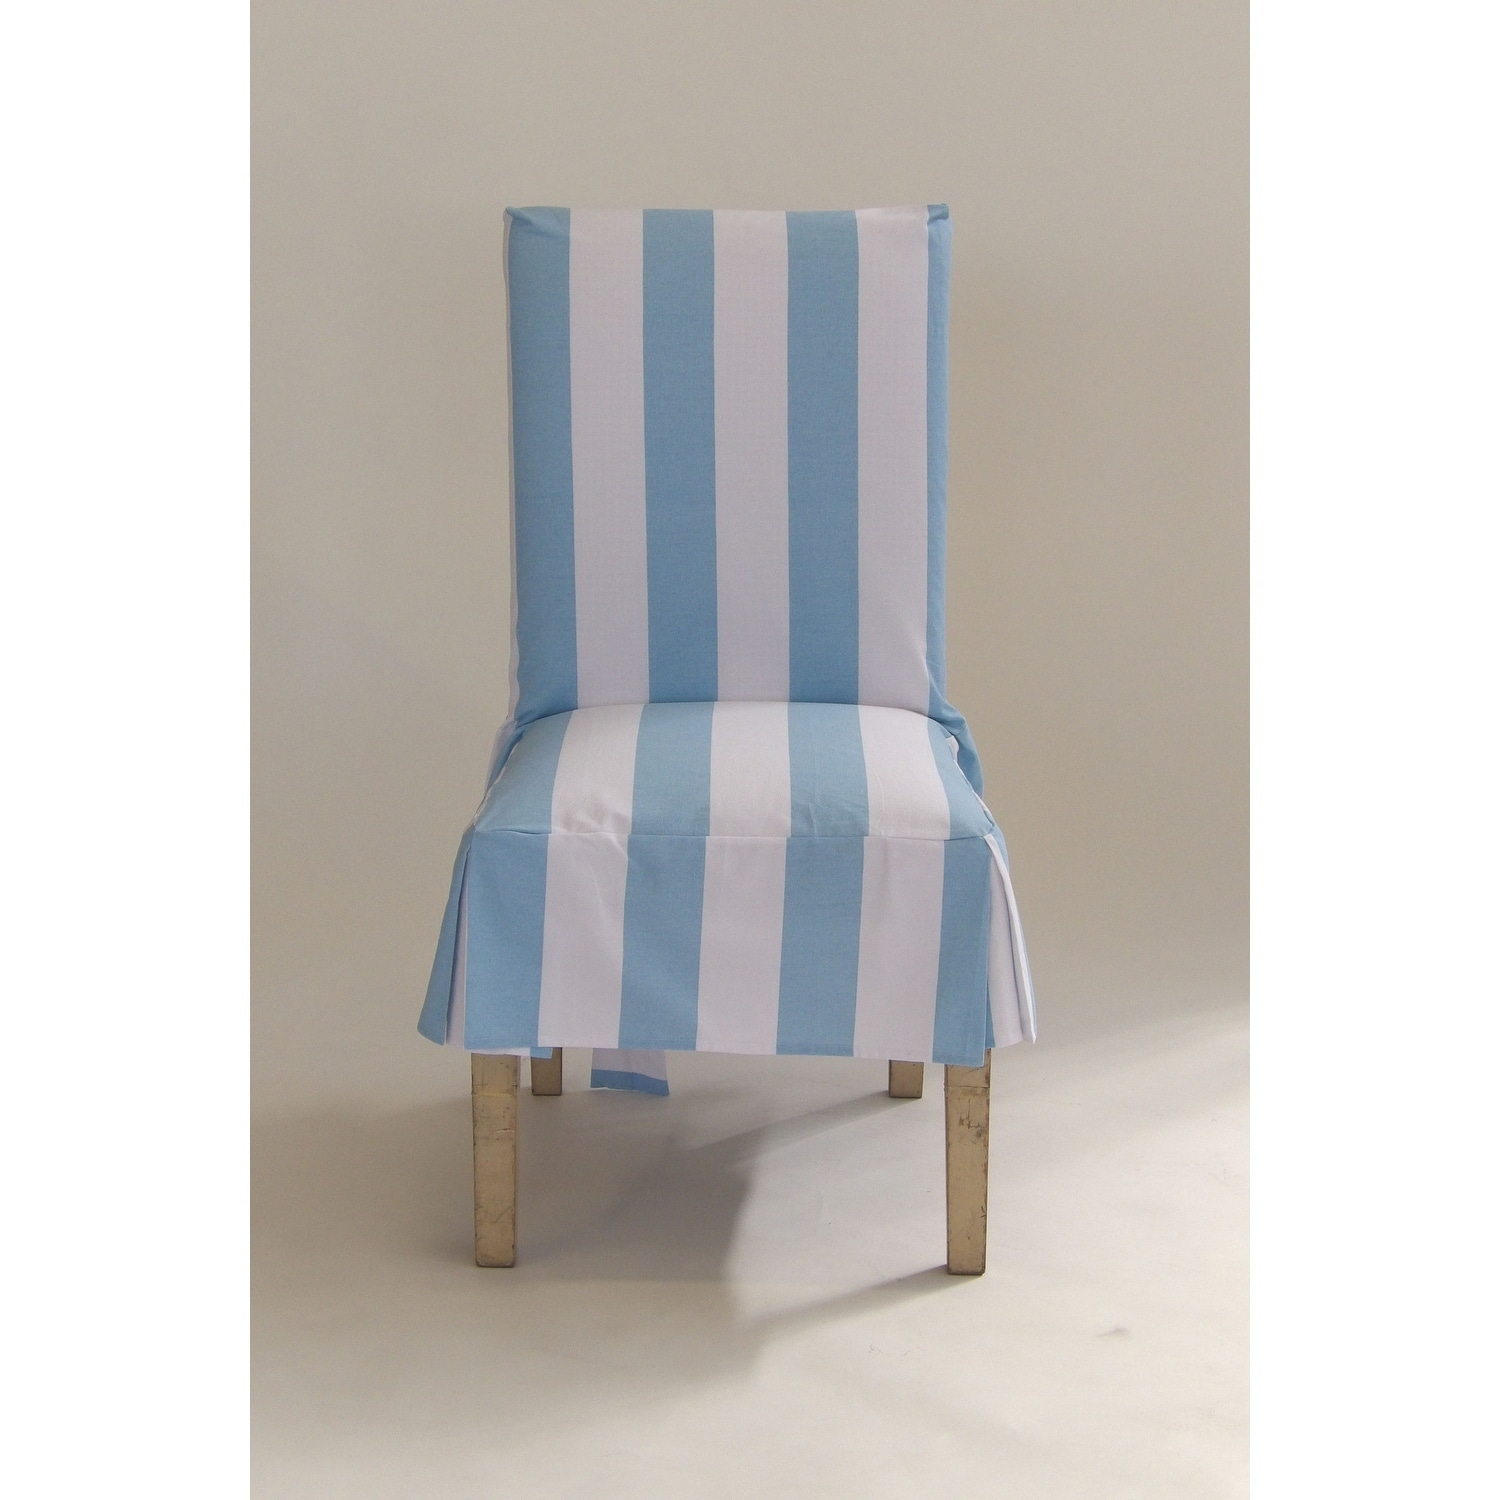 Shop Classic Slipcovers Cabana Stripe Short Dining Chair Covers Set Of 2    Free Shipping On Orders Over $45   Overstock.com   20362305